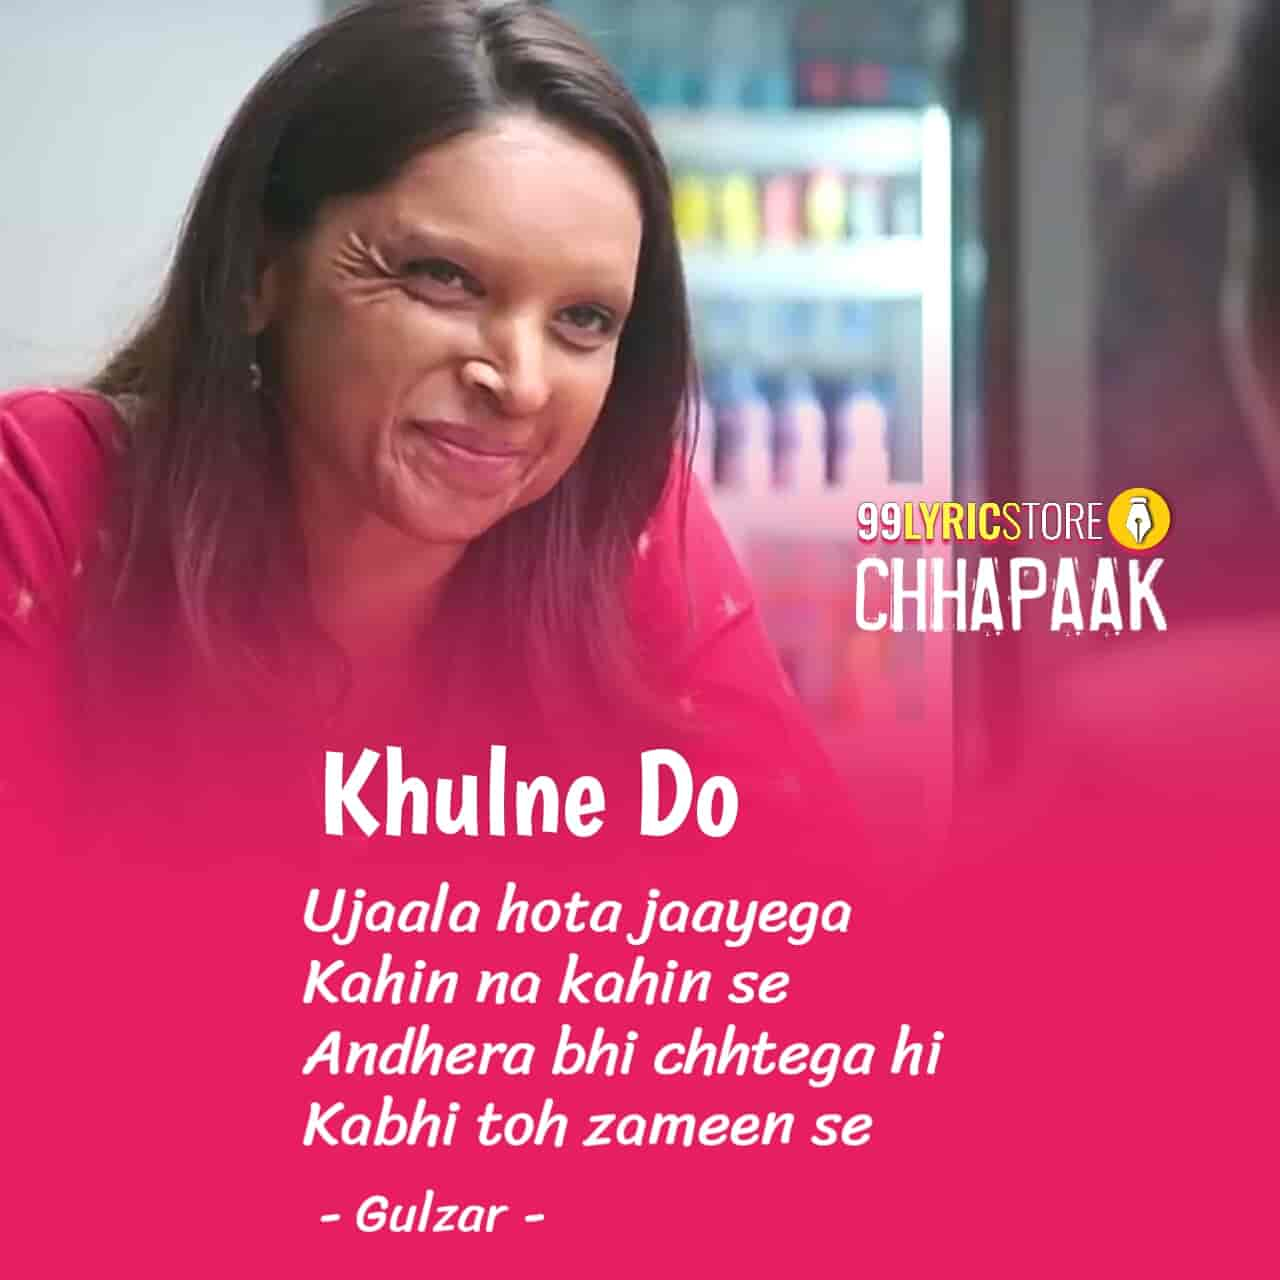 Khulne Do Song Lyrics Images From Movie Chhapaak